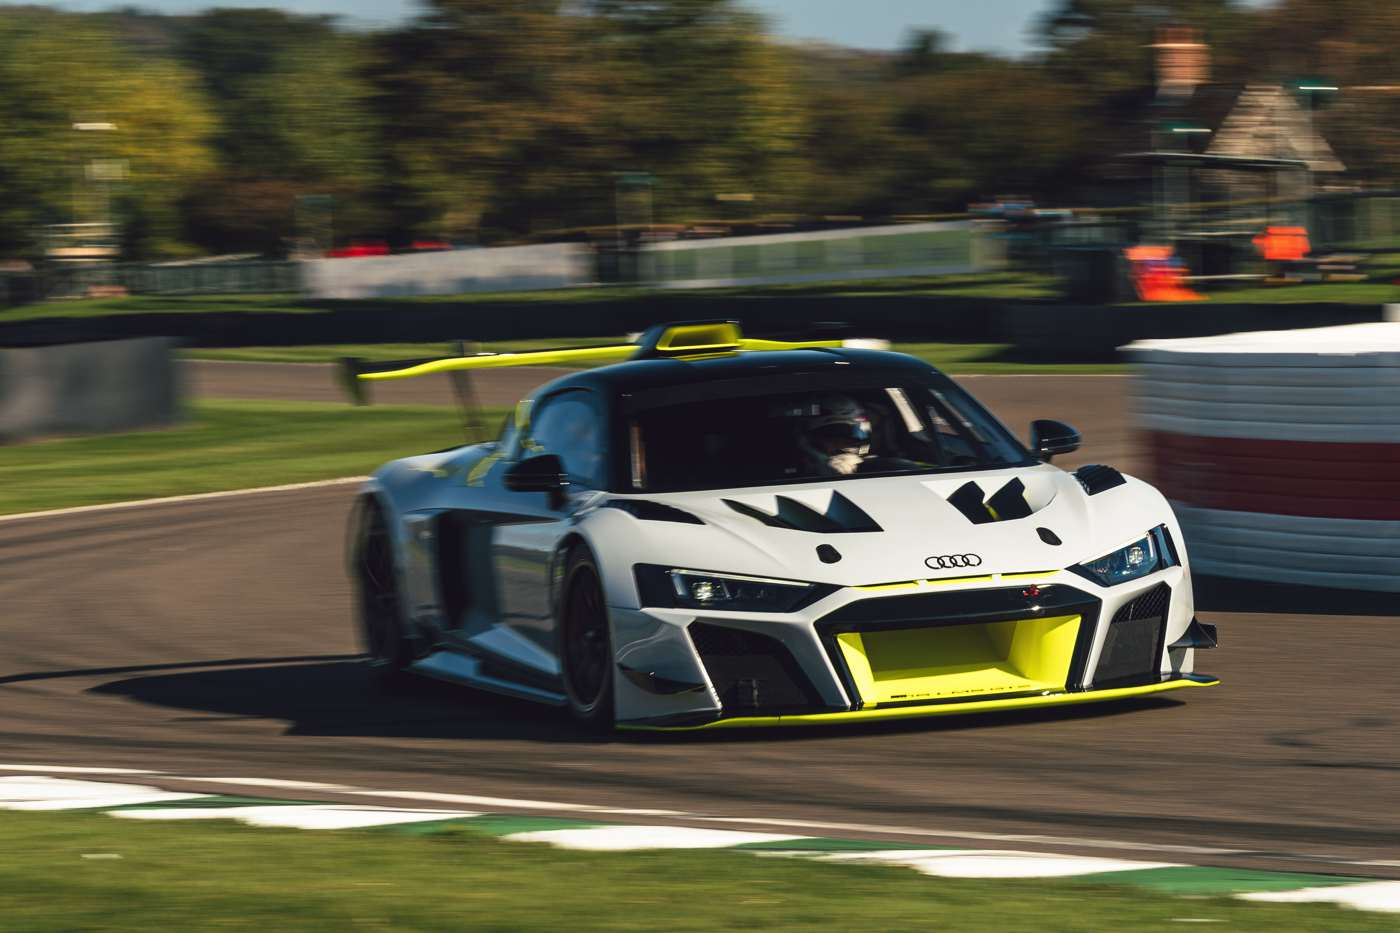 Goodwood SpeedWeek 2020 Audi R8 LMS GT2, Tom Kristensen